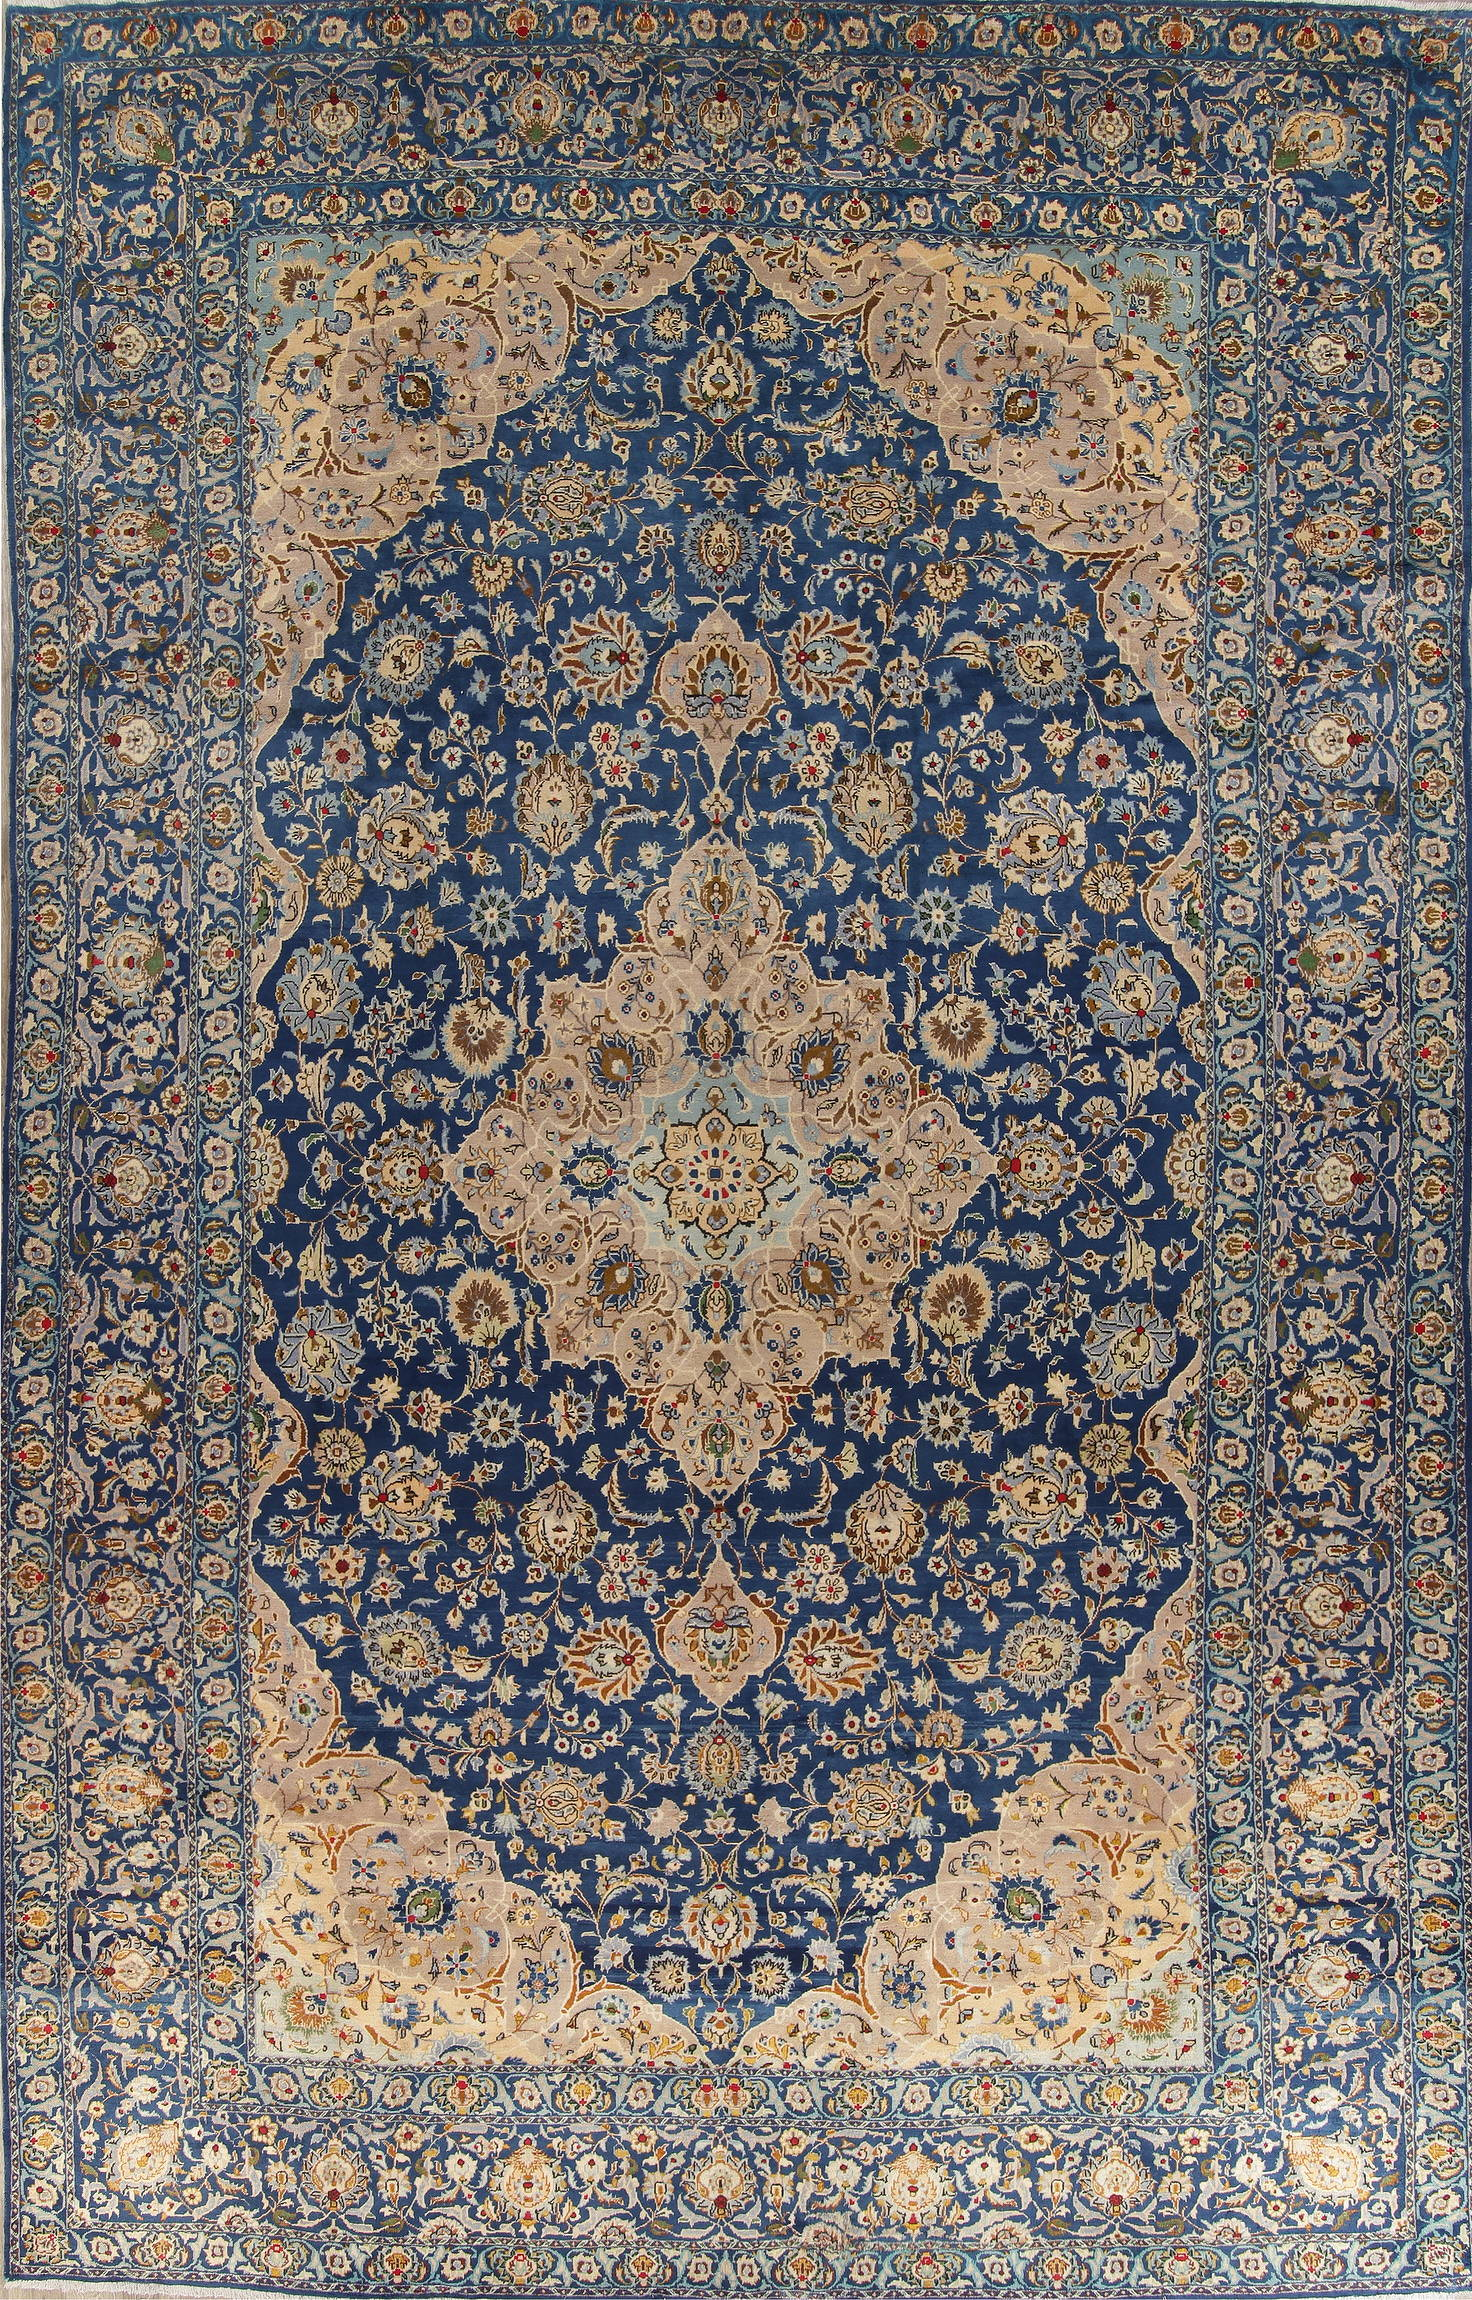 Antique Light Blue Floral Tabriz Persian Hand Knotted 11x19 Wool Rug